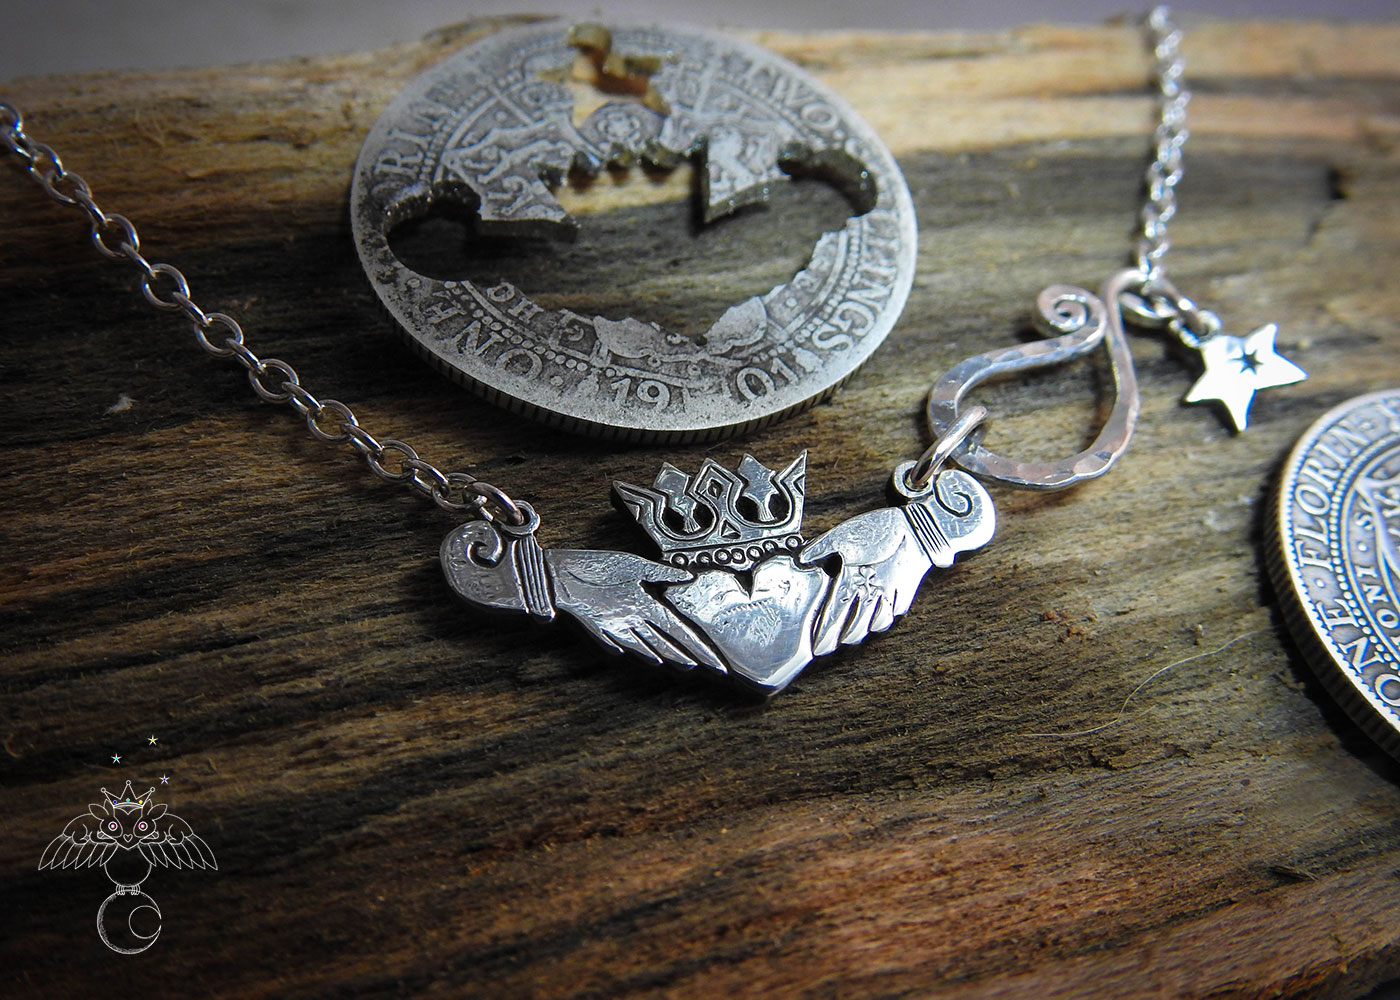 Claddagh jewellery - handmade and ethical silver Florin coin. The Hairy Growler Love collection. Handcrafted and repurposed Victorian silver Florin Claddagh necklace by Hairy Growler.